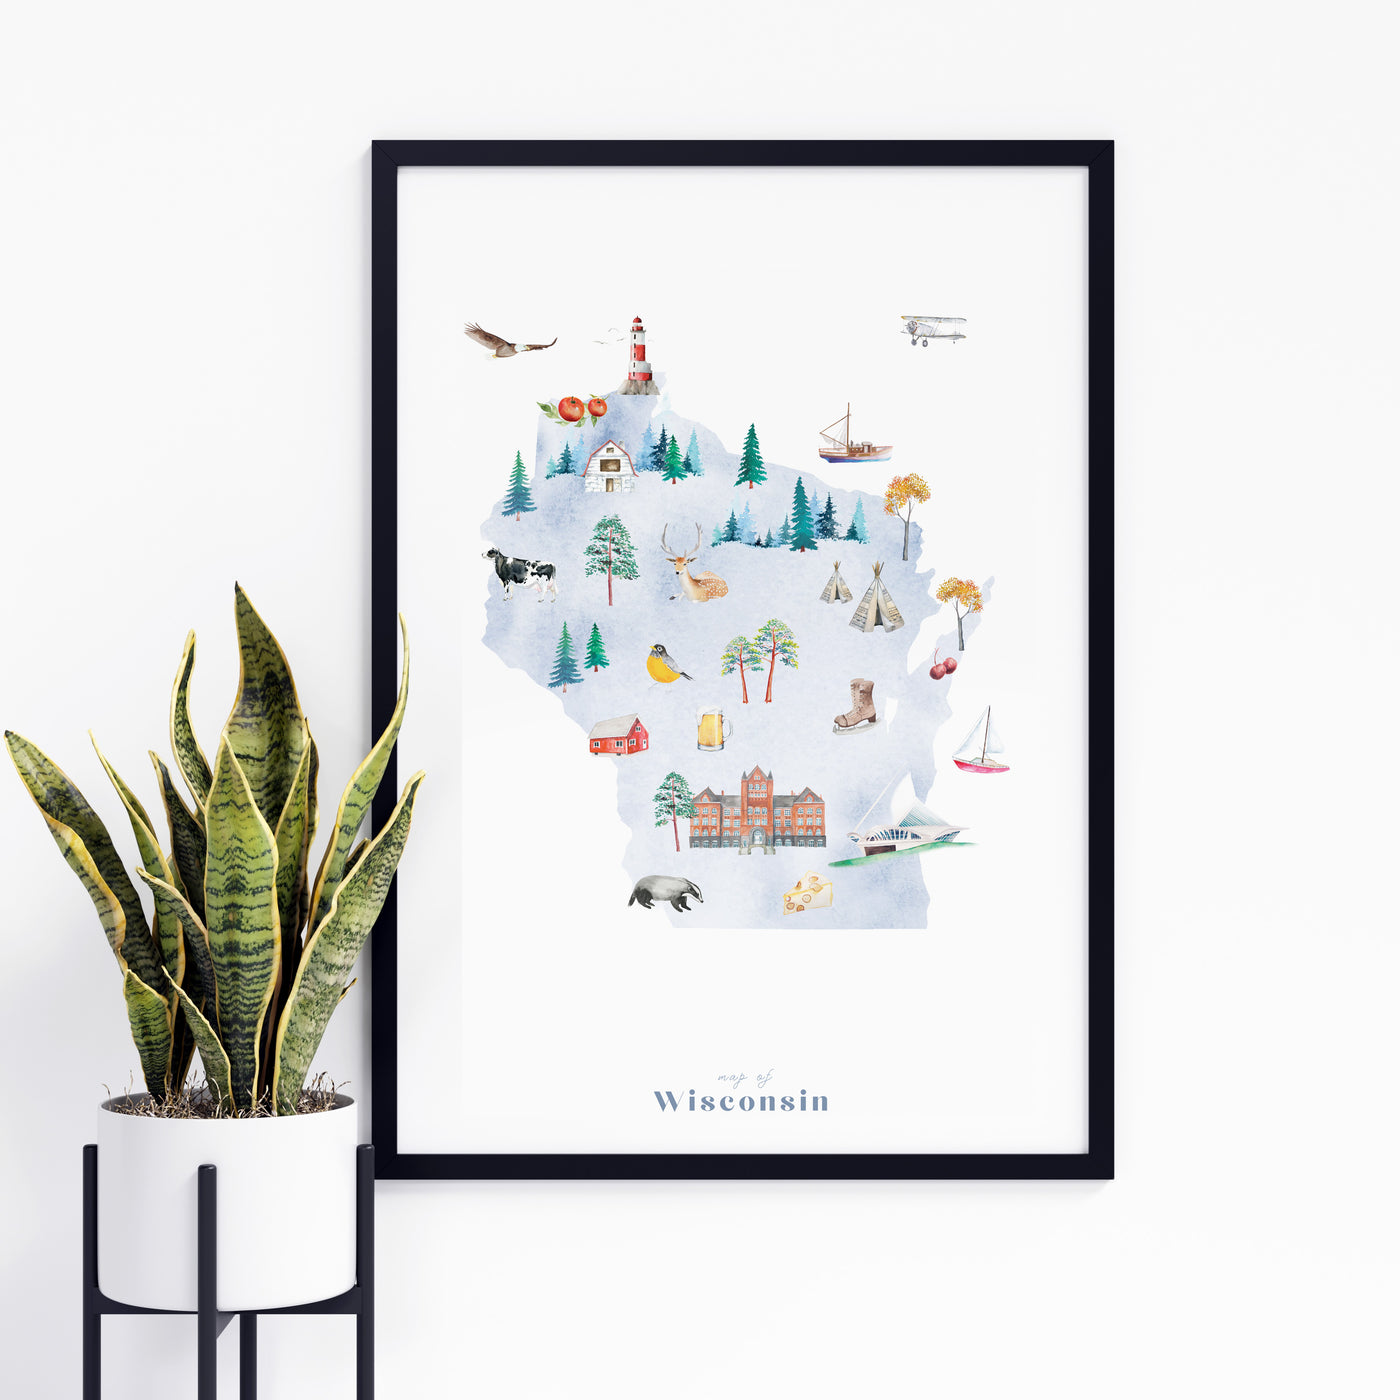 Wisconsin Illustrated State Map Art Print